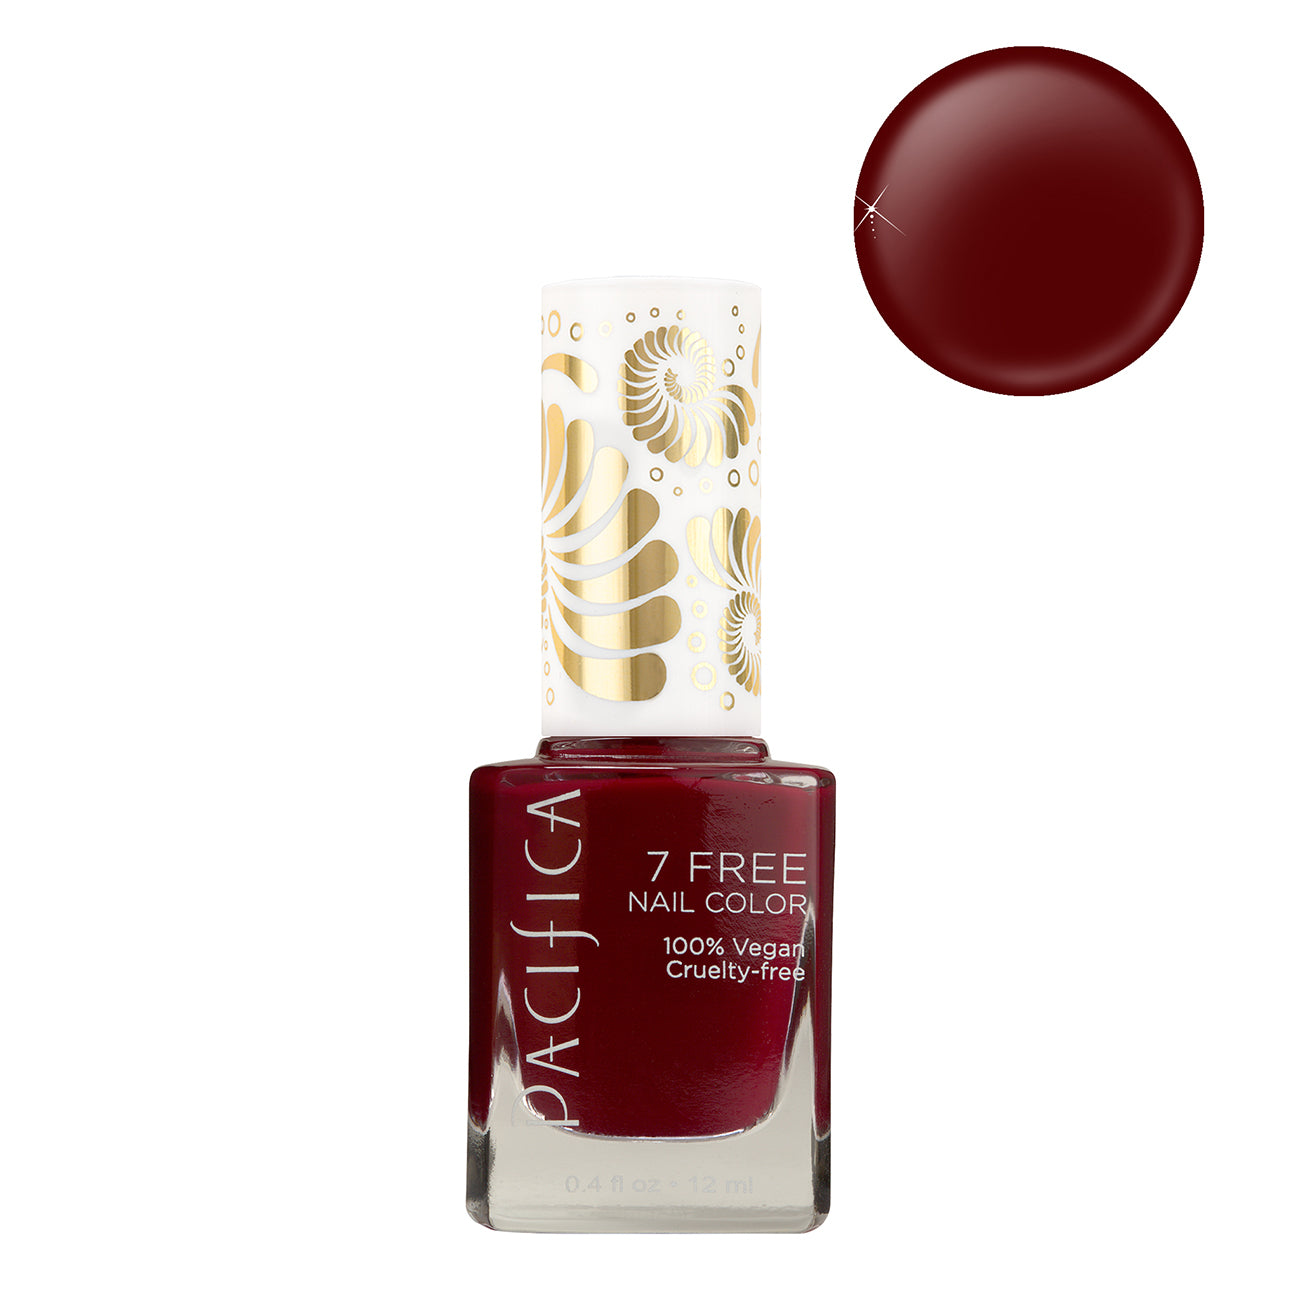 7 Free Nail Polish - Red Red Wine